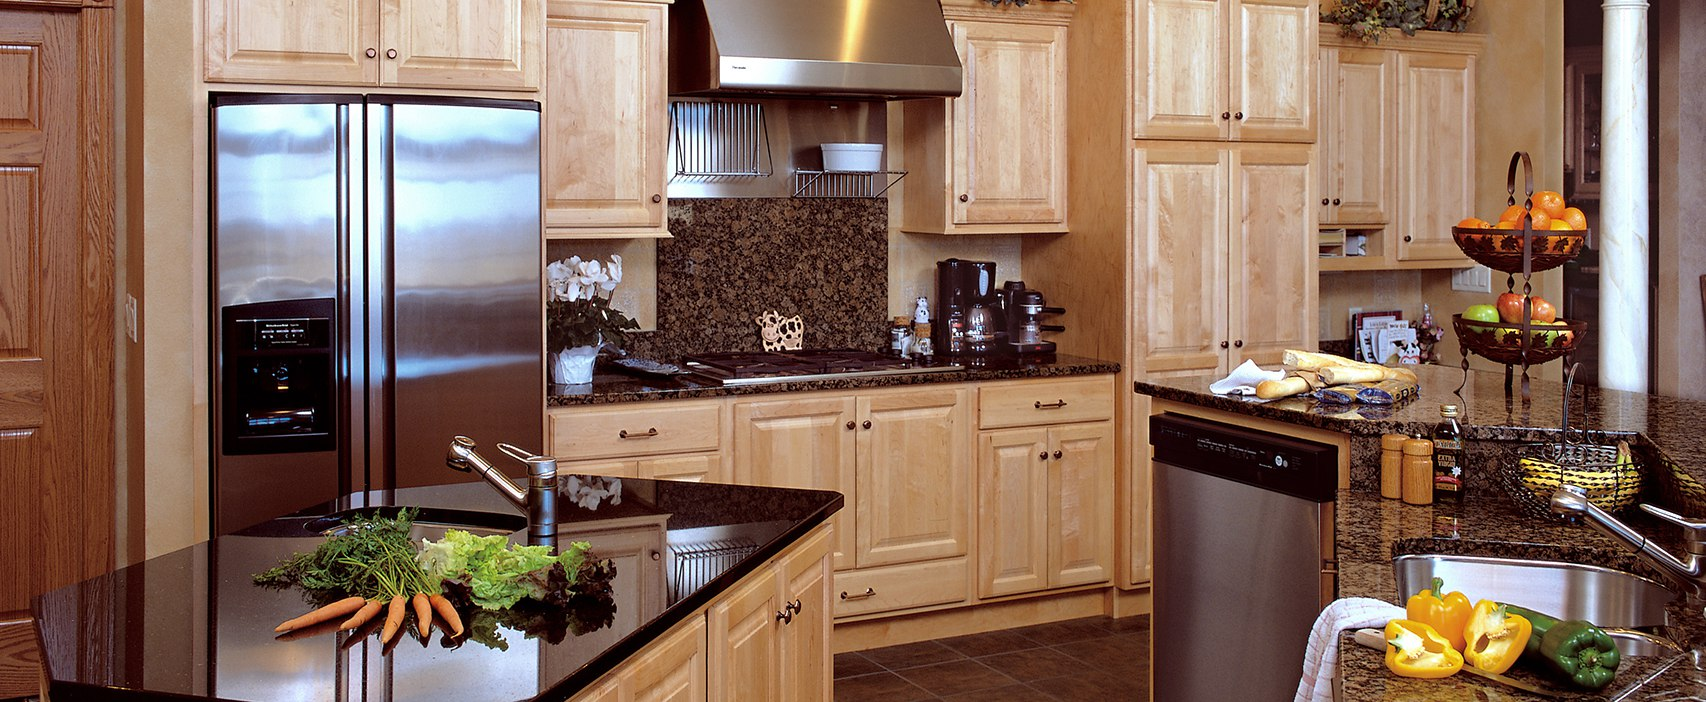 Showplace Slider Showplace Kitchen Showplace Light Kitchen ... Good Looking